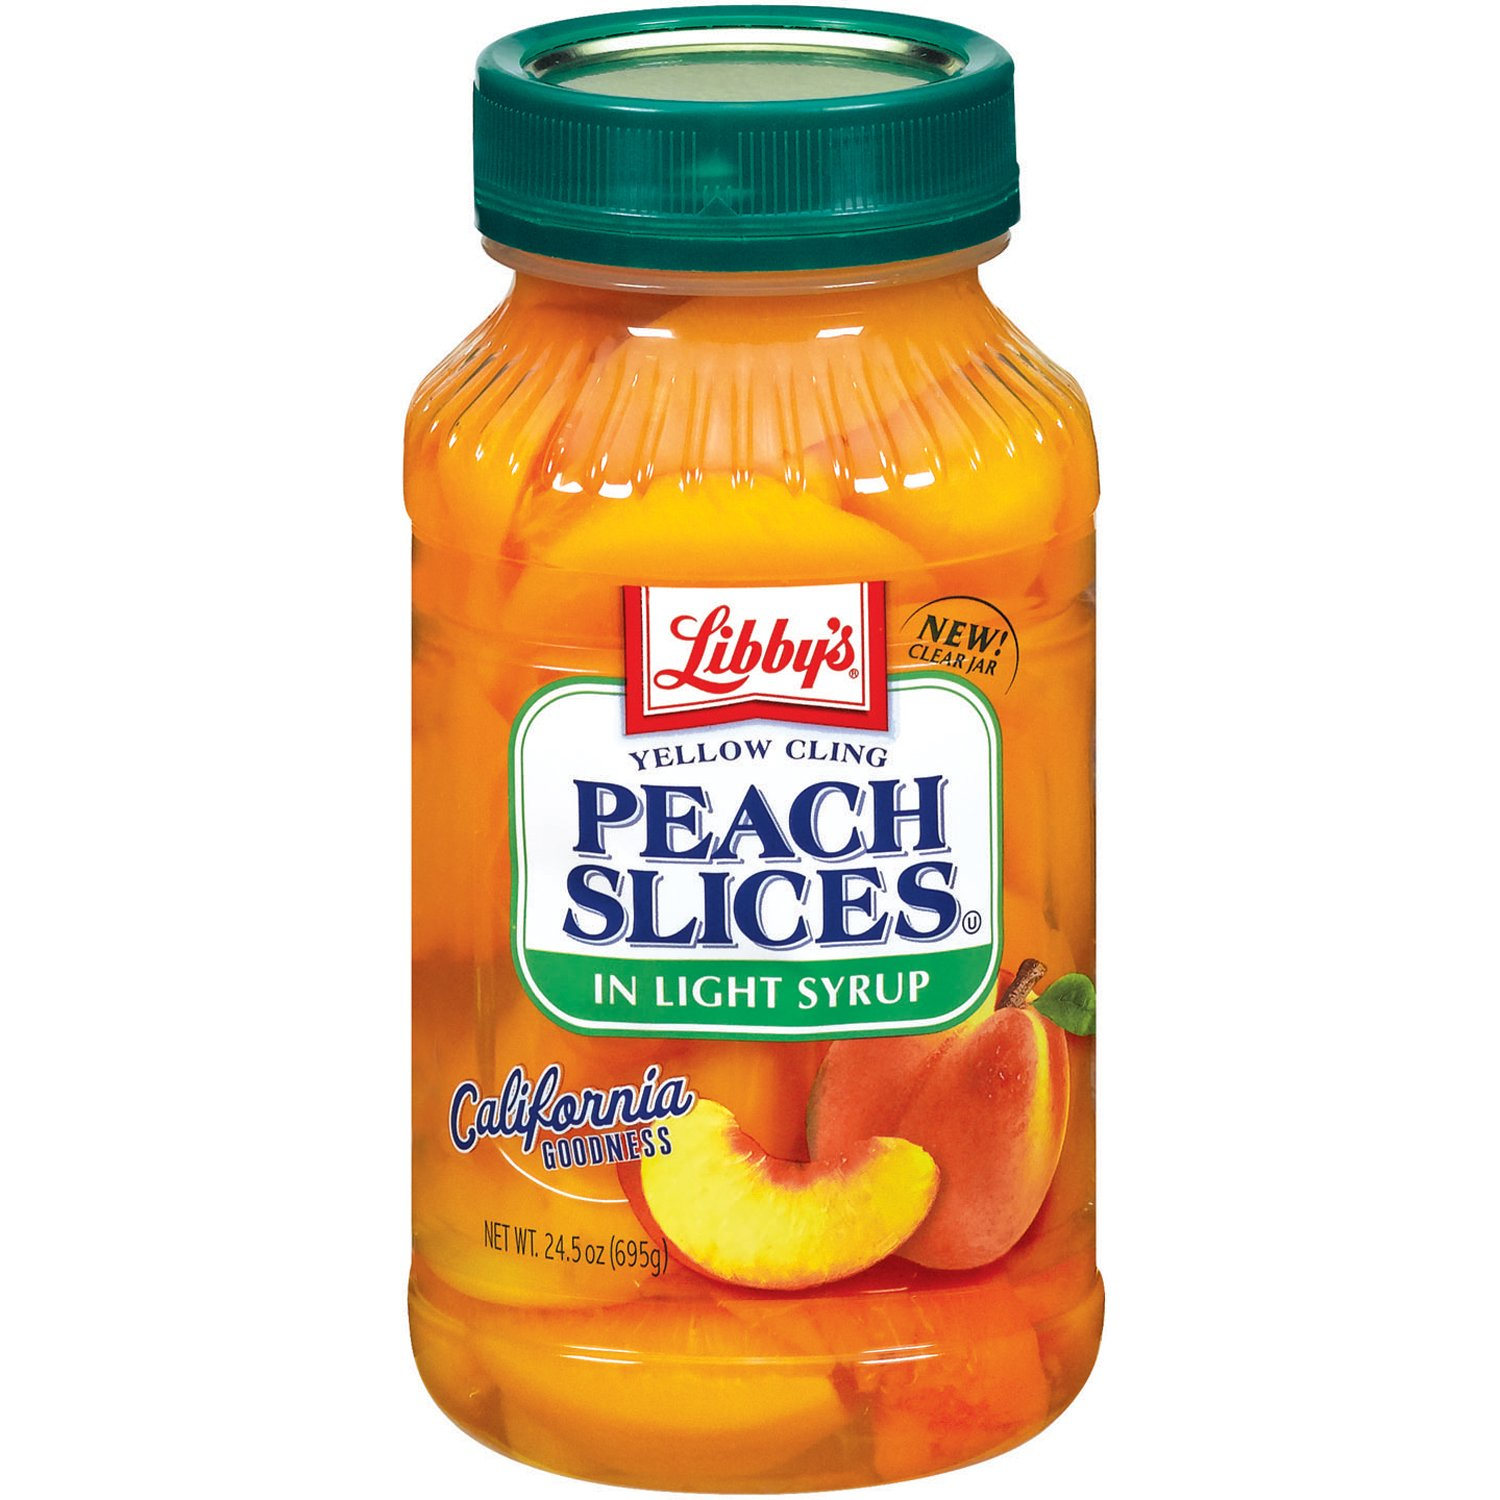 Libby's Peaches Sliced In Light Syrup Jars, 24.5 Ounce (Pack of 8)